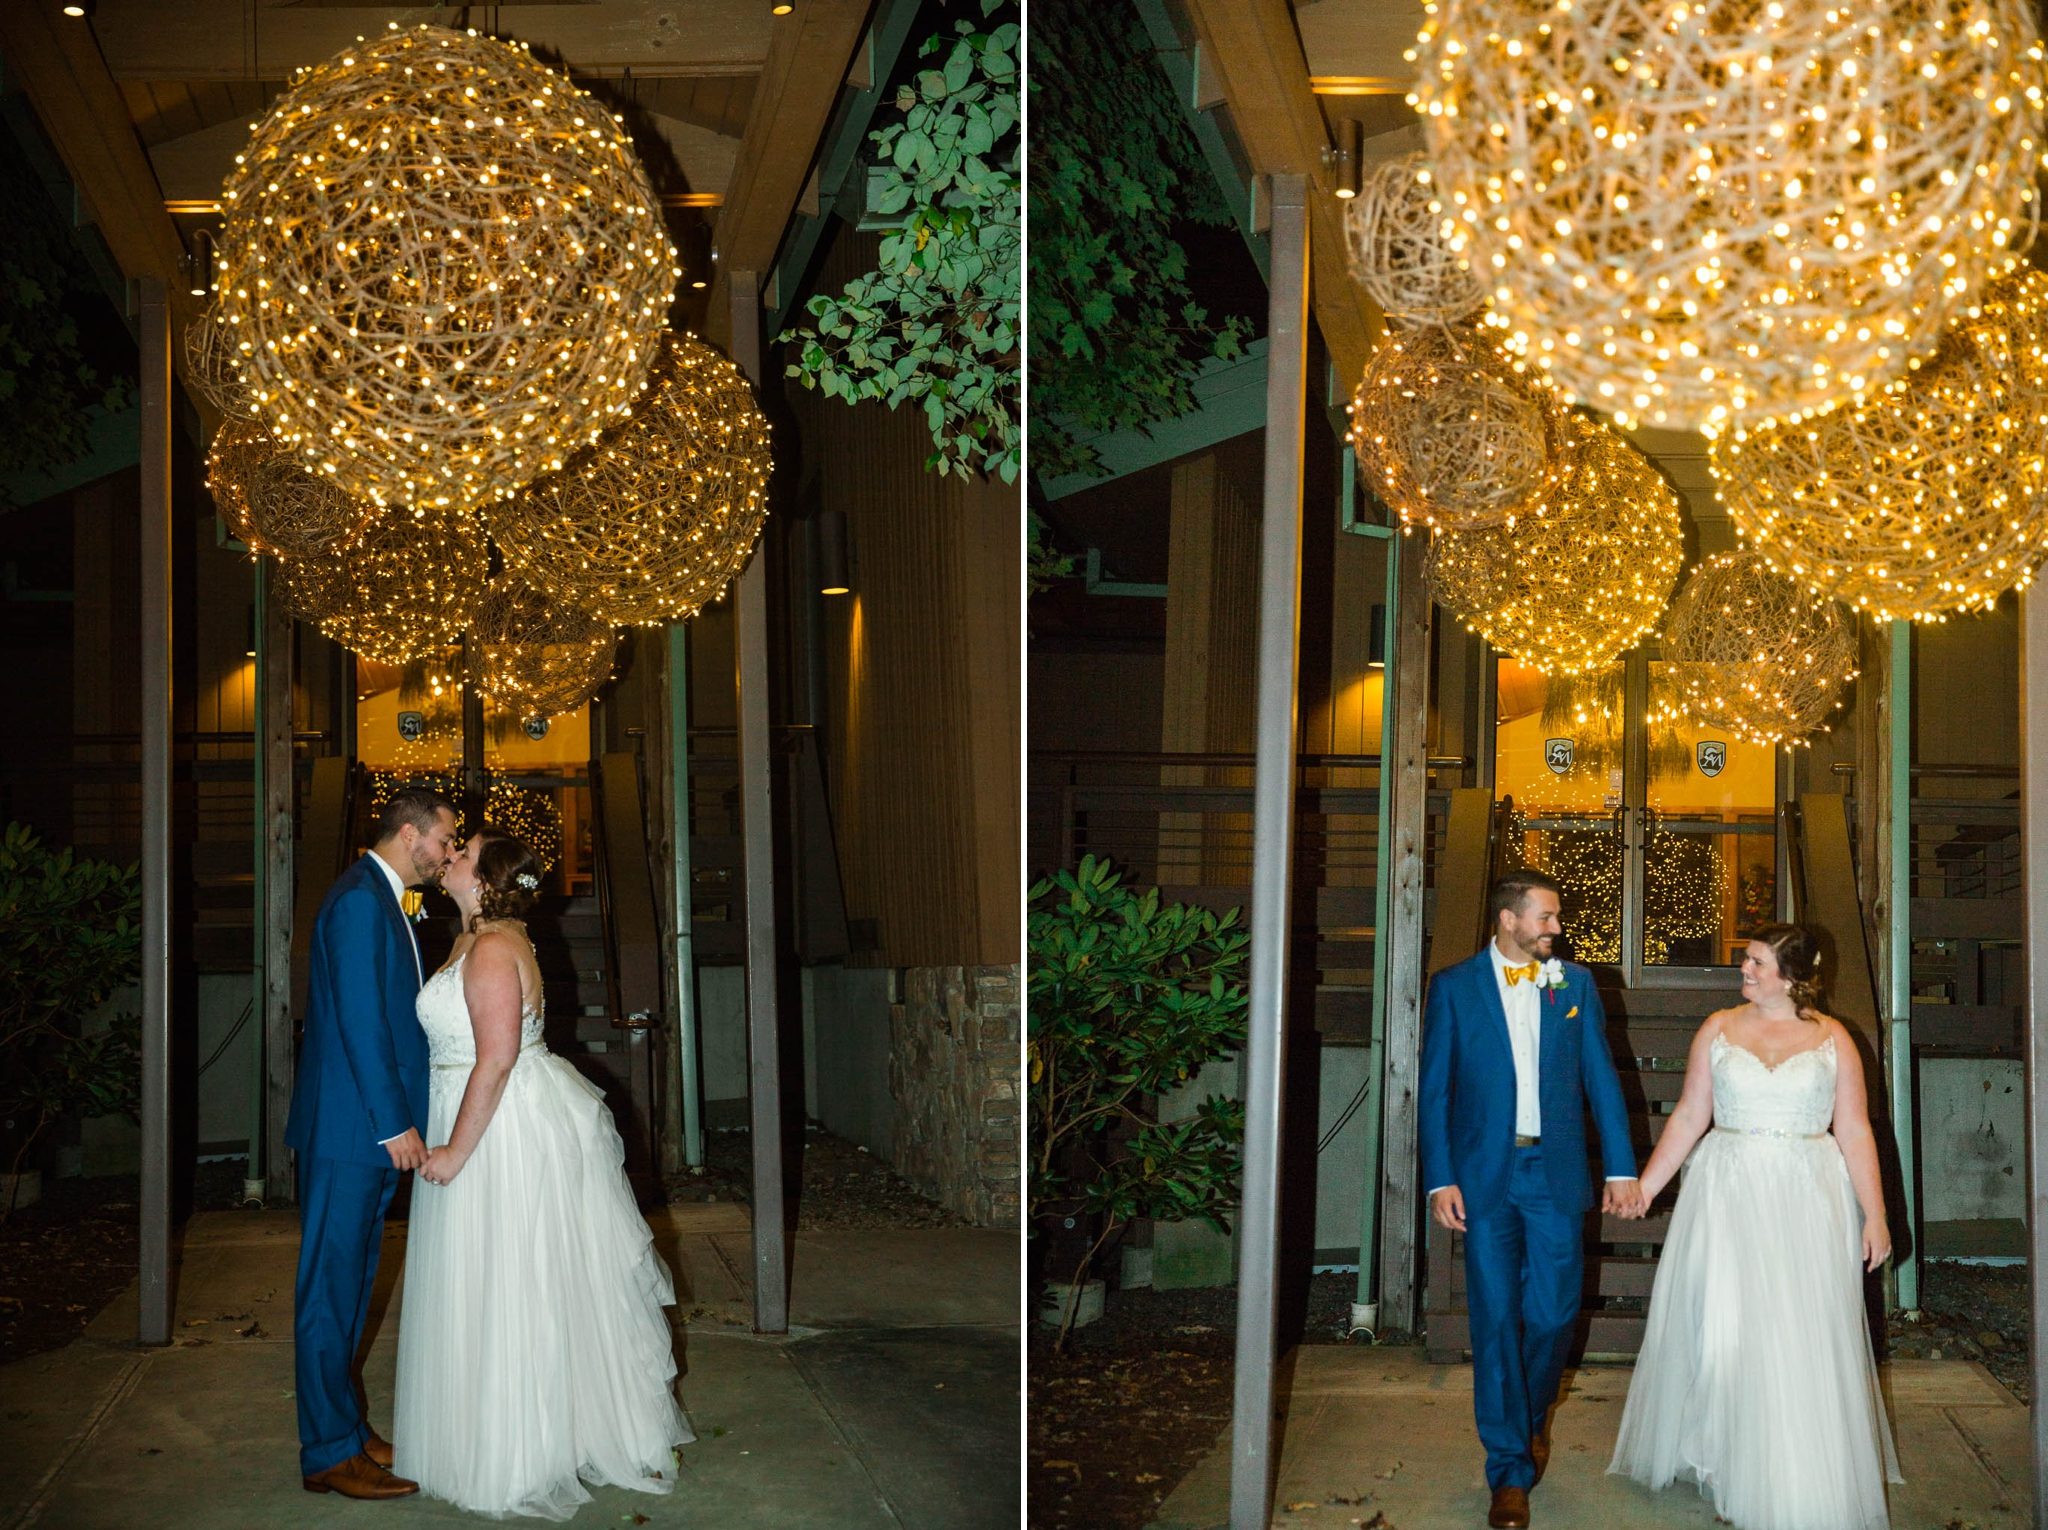 Night time Picture of Bride and Groom - Meredith + Jason - The Crest Center and Pavilion in Asheville, NC - Raleigh Wedding Photographer